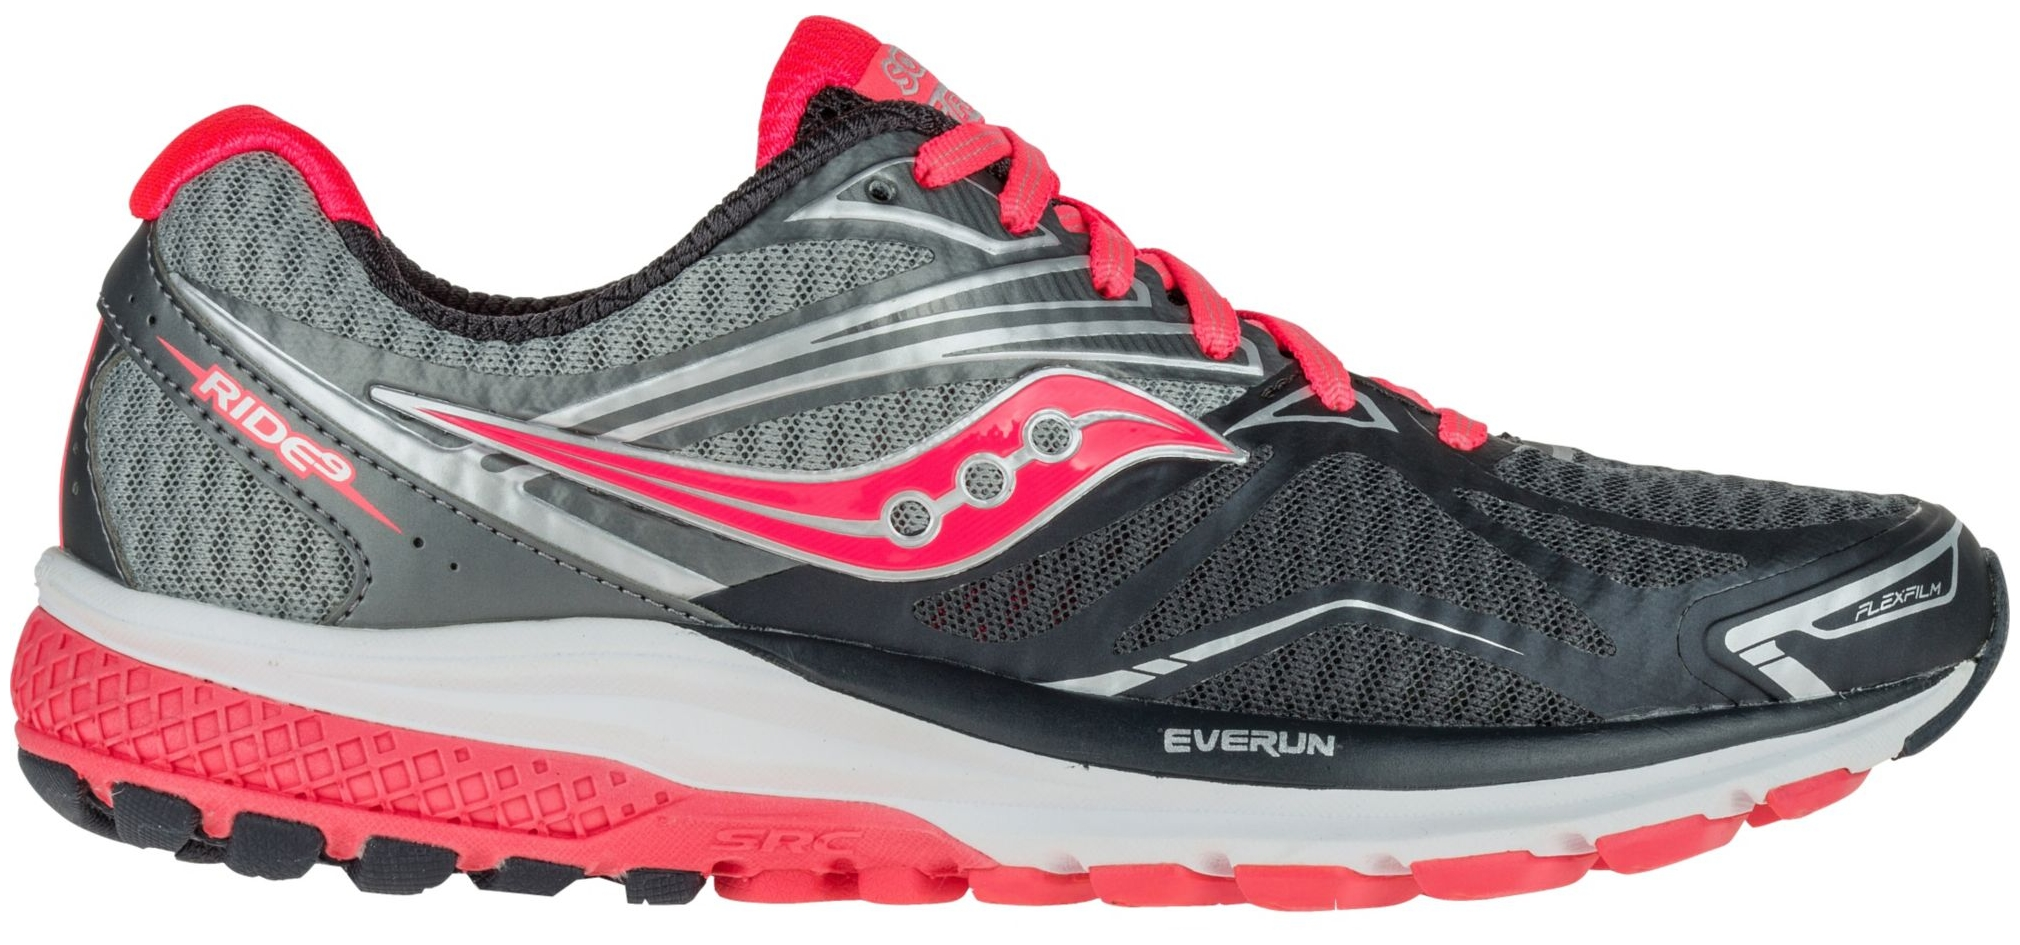 Saucony Women's Ride 9 Running Shoes (Grey Coral, 6.0) by Saucony